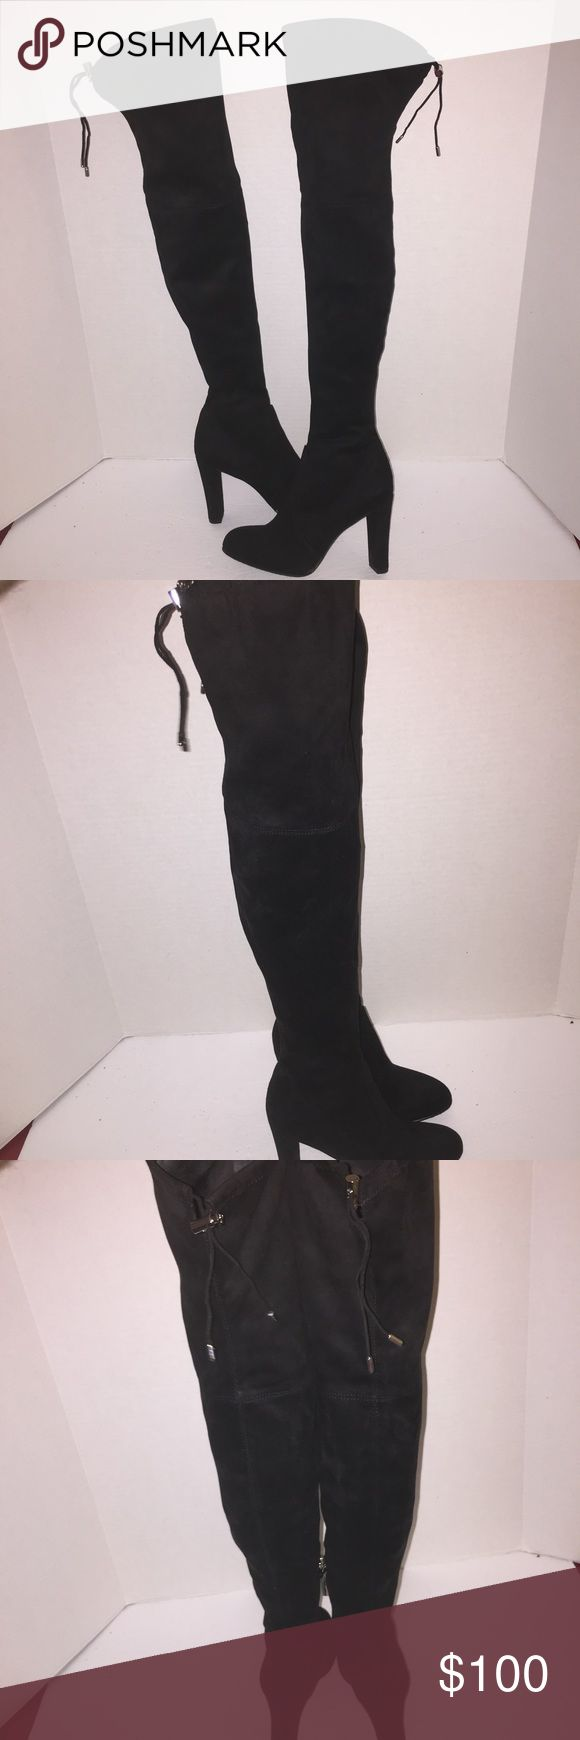 Sam Edelman Kent Over The Knee Stretch Boots sz 6 Worn before no lowball offers , no trades Sam Edelman Shoes Over the Knee Boots